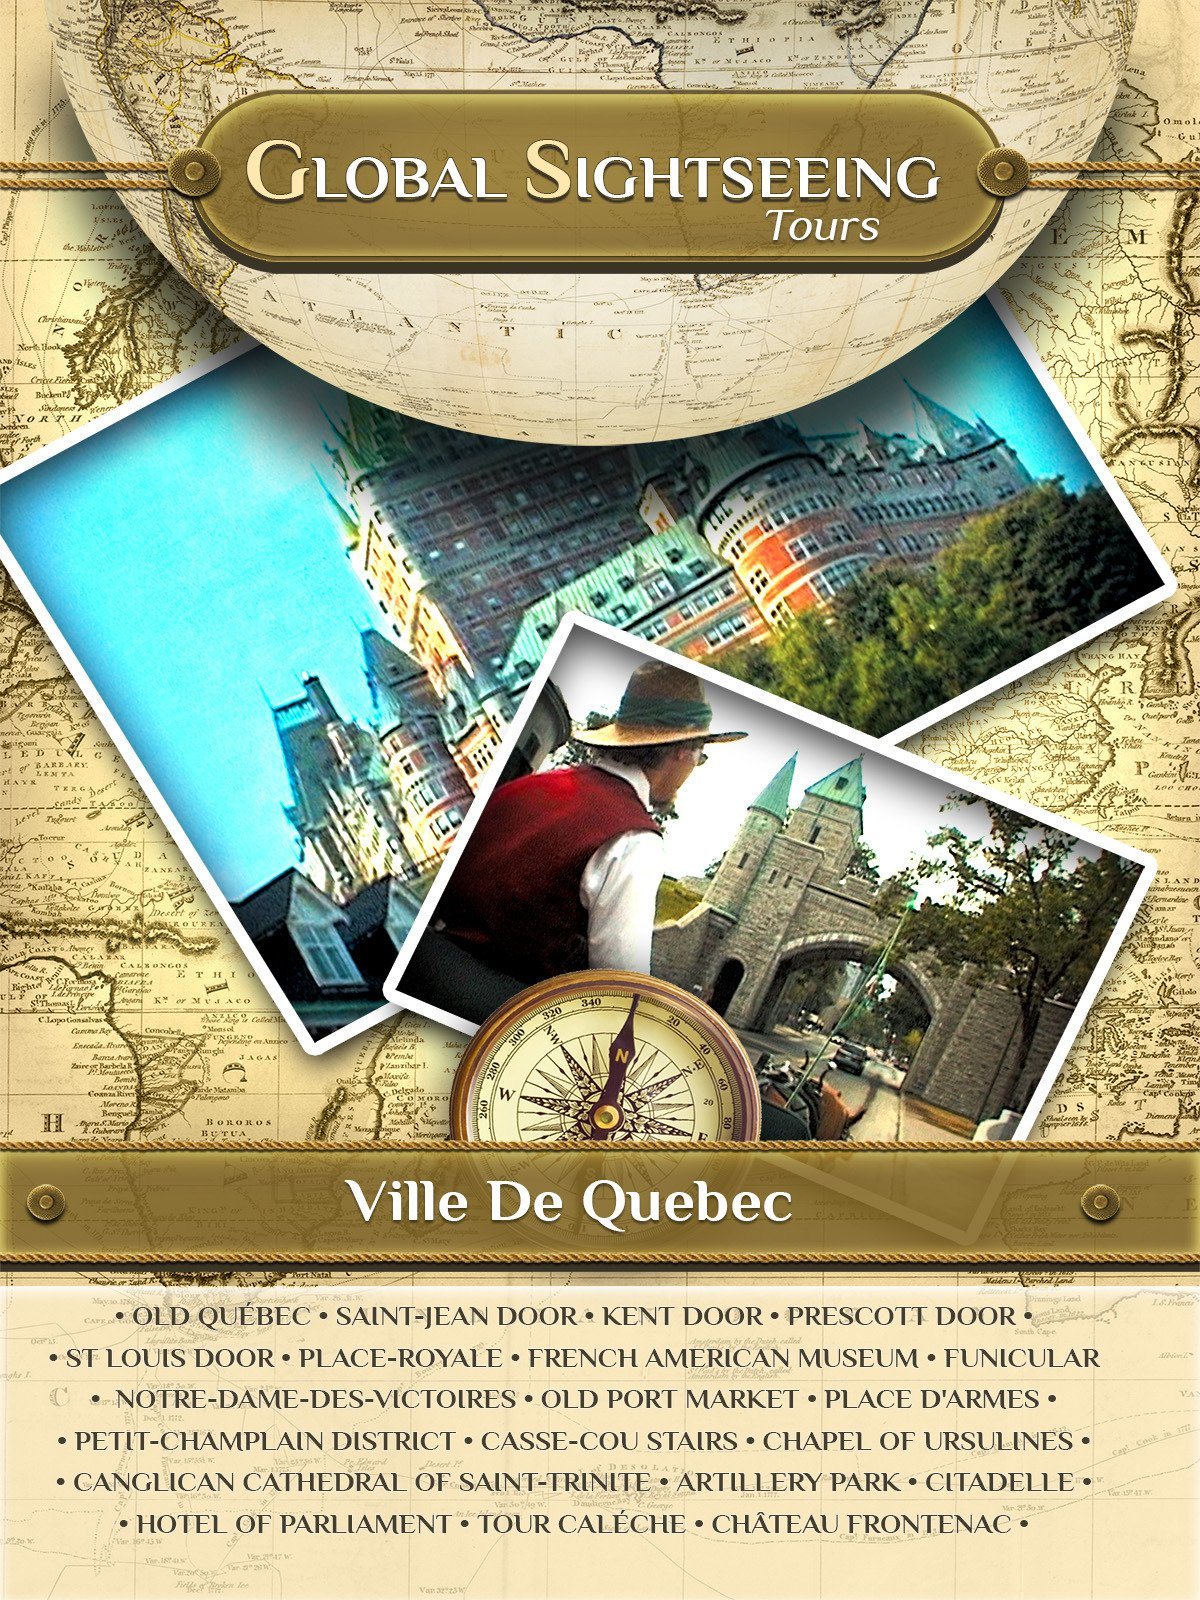 Ville de Quebec, Canada - Global Sightseeing Tours